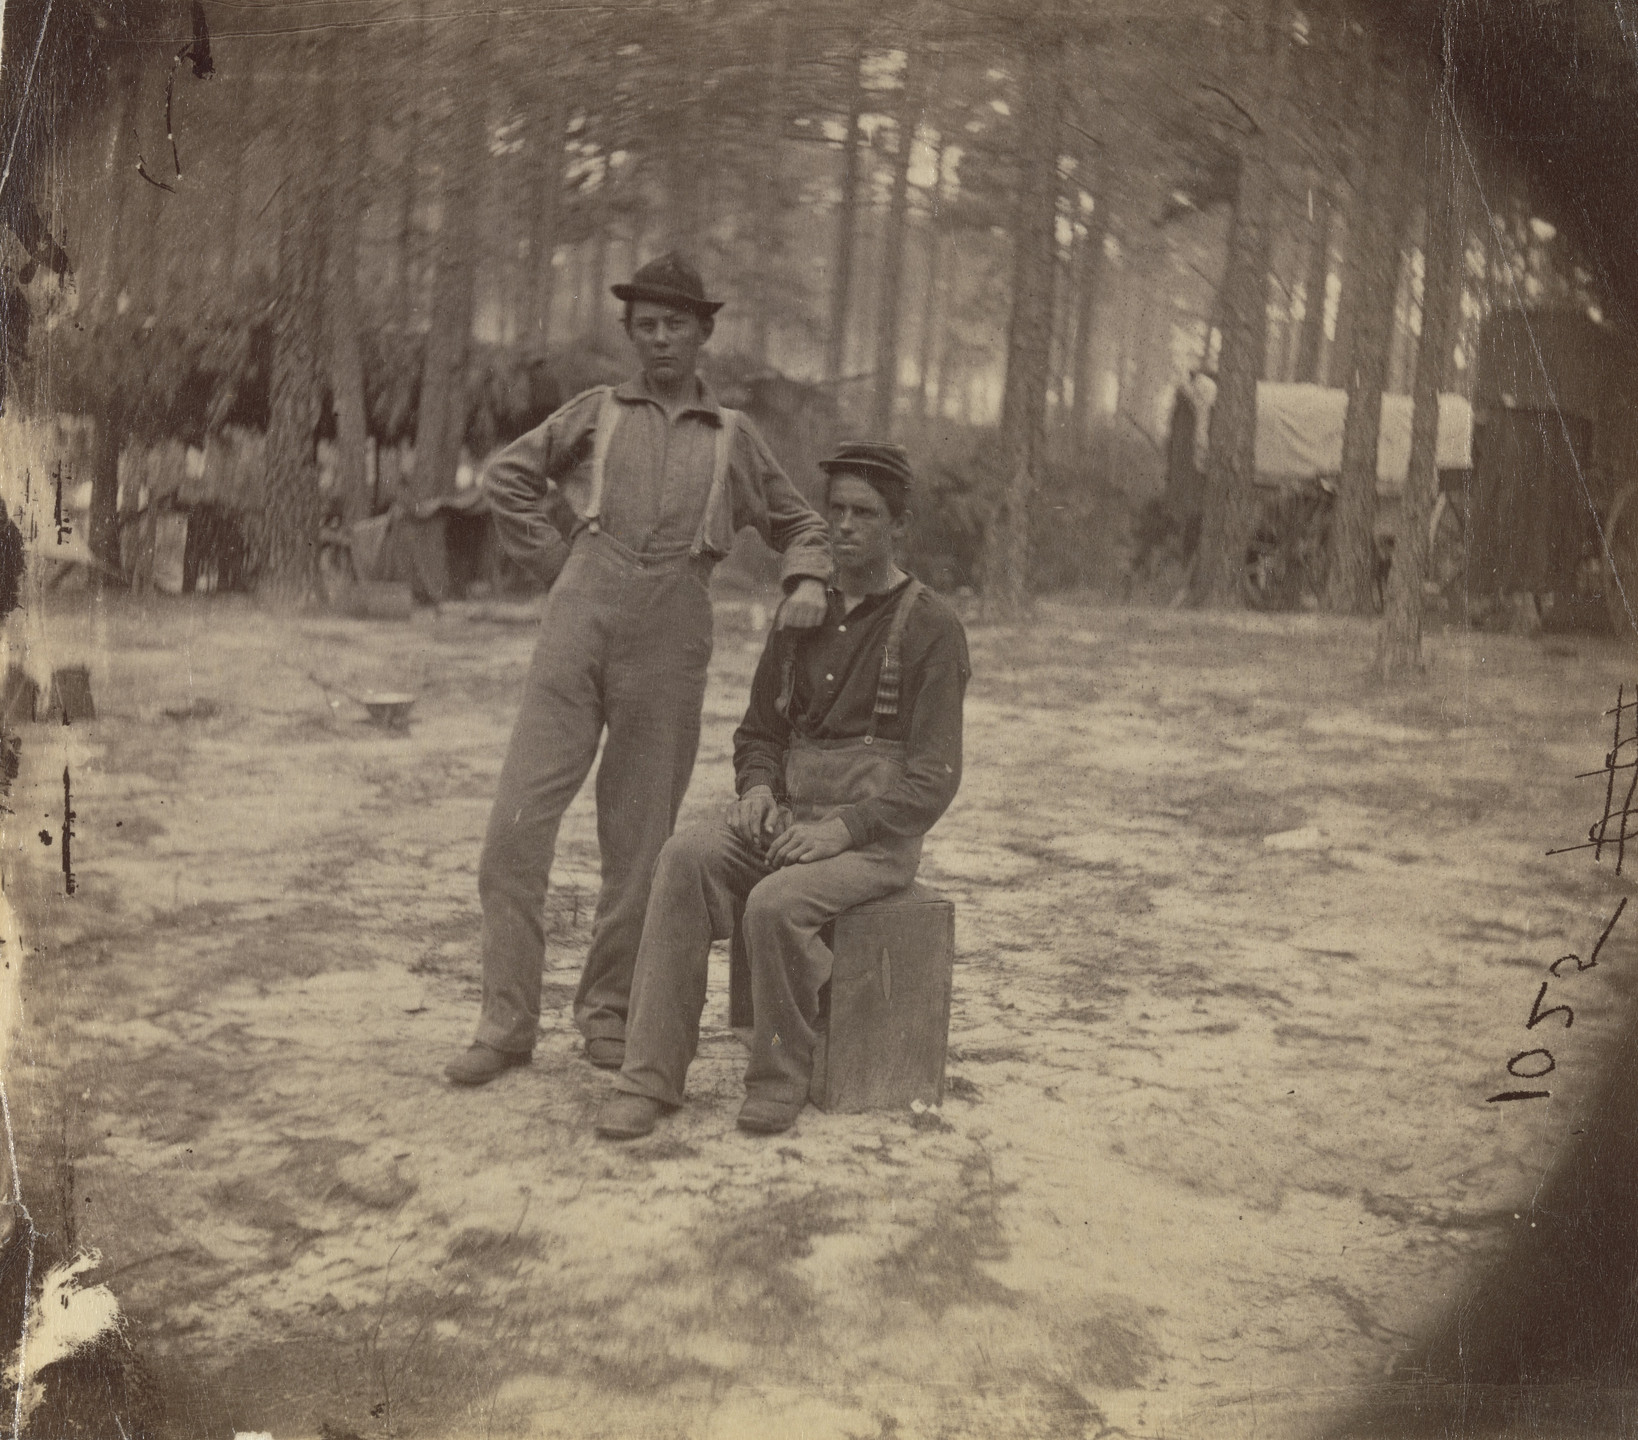 Unknown photographer. Two Soldiers, American Civil War. 1860-64